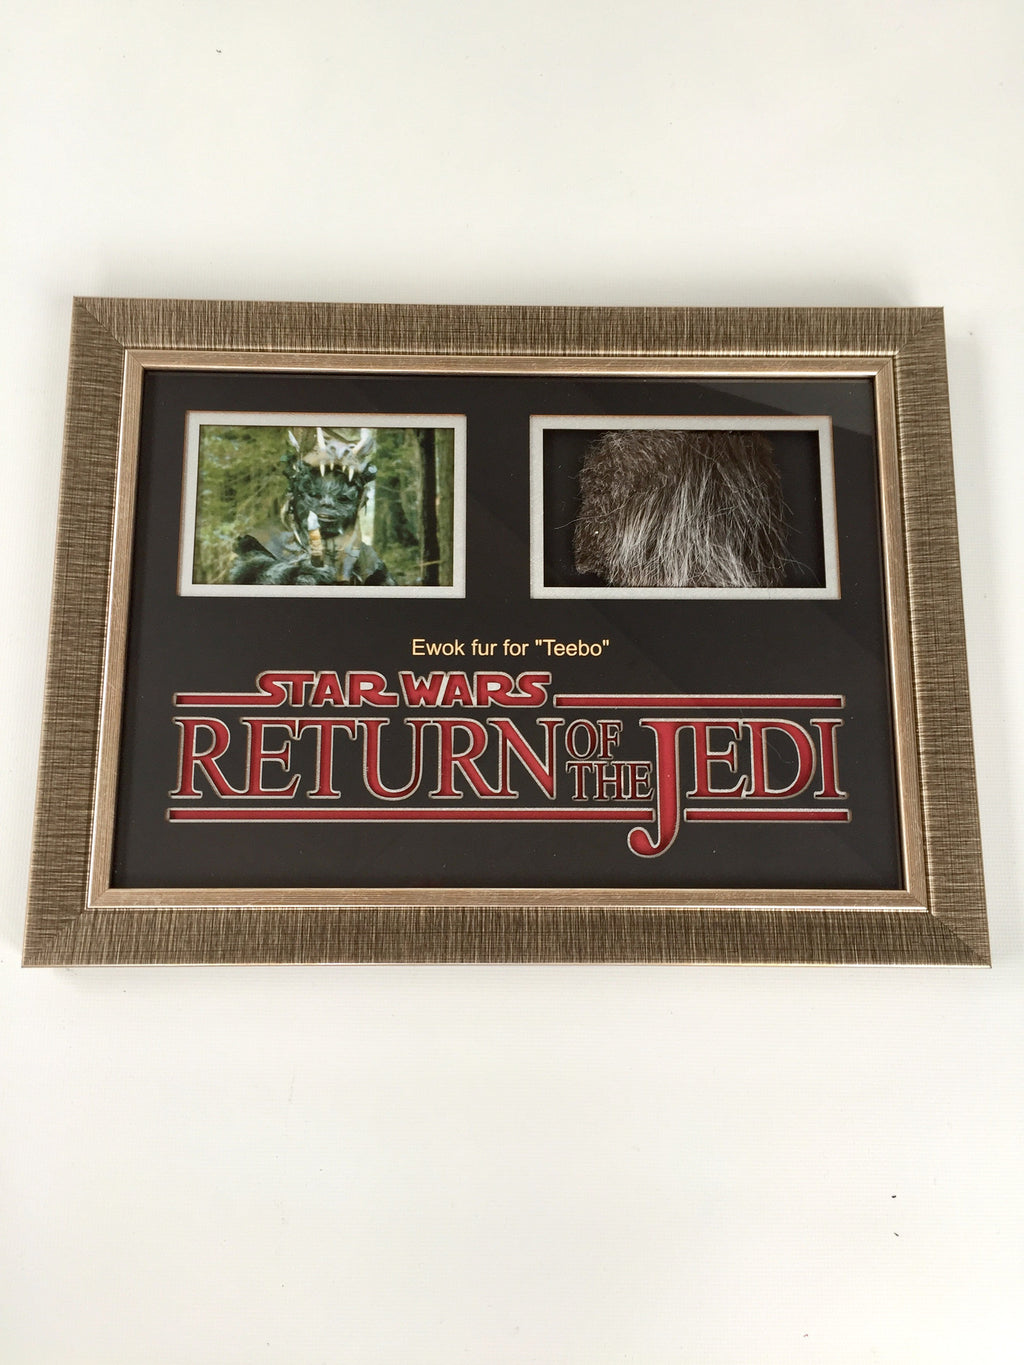 Star Wars Episode VI: Return of the Jedi (1981) Teebo Ewok Fur Display - RESERVED